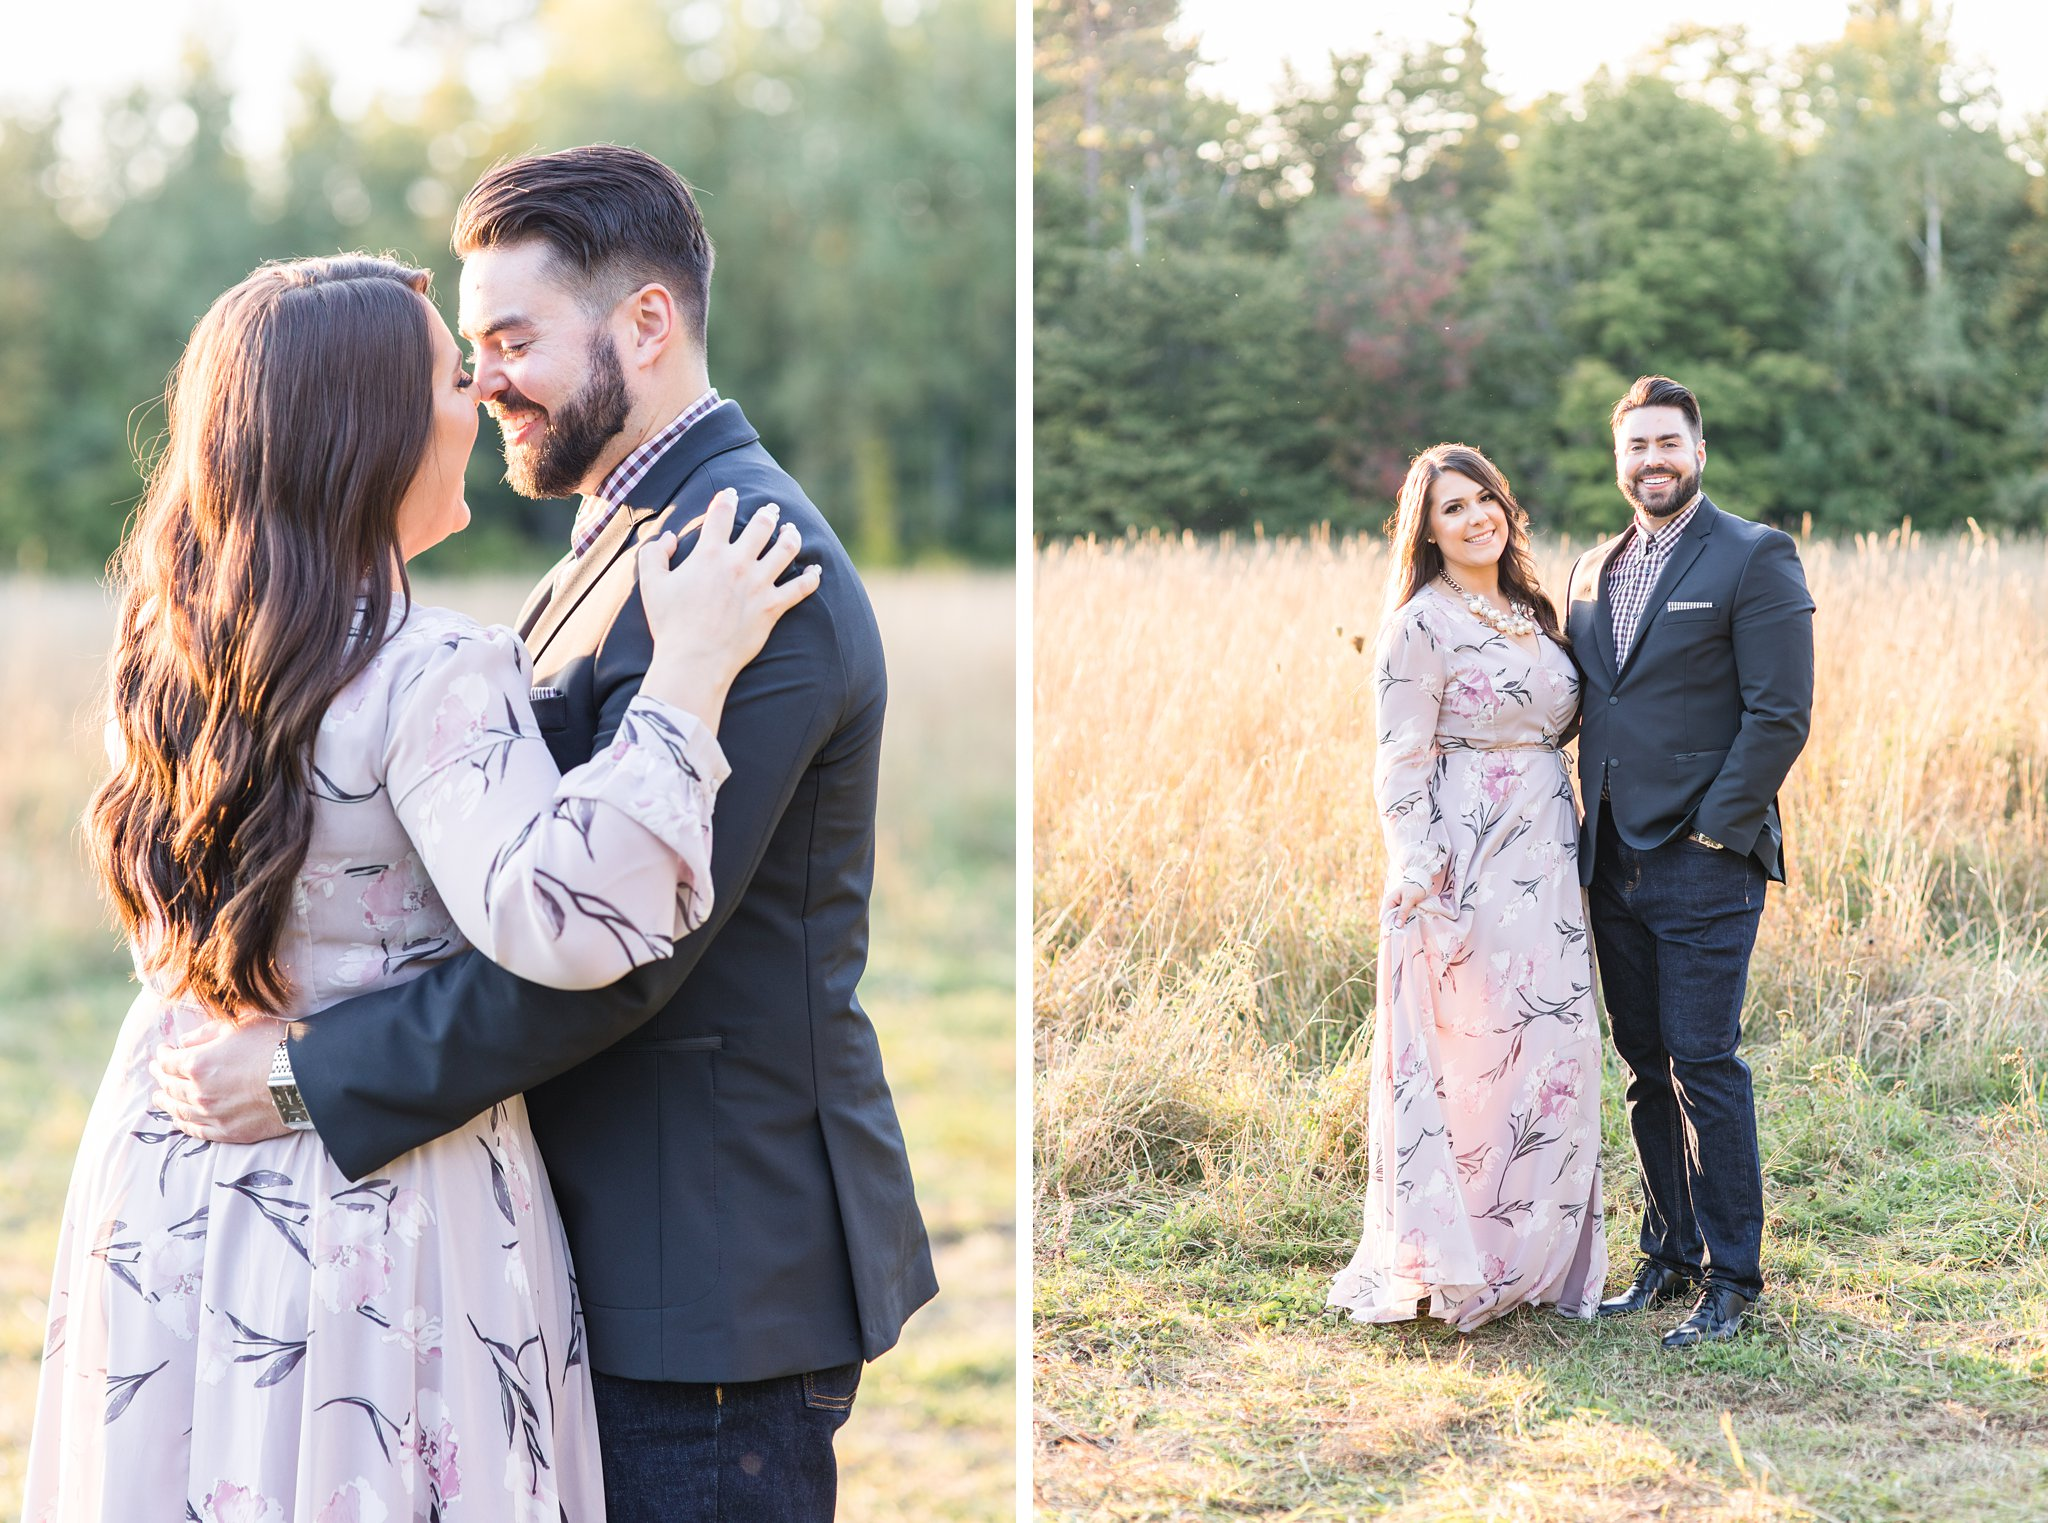 Sunset, golden hour glow light in hair, Mackenzie King Estate Engagement Photos by Amy Pinder Photography